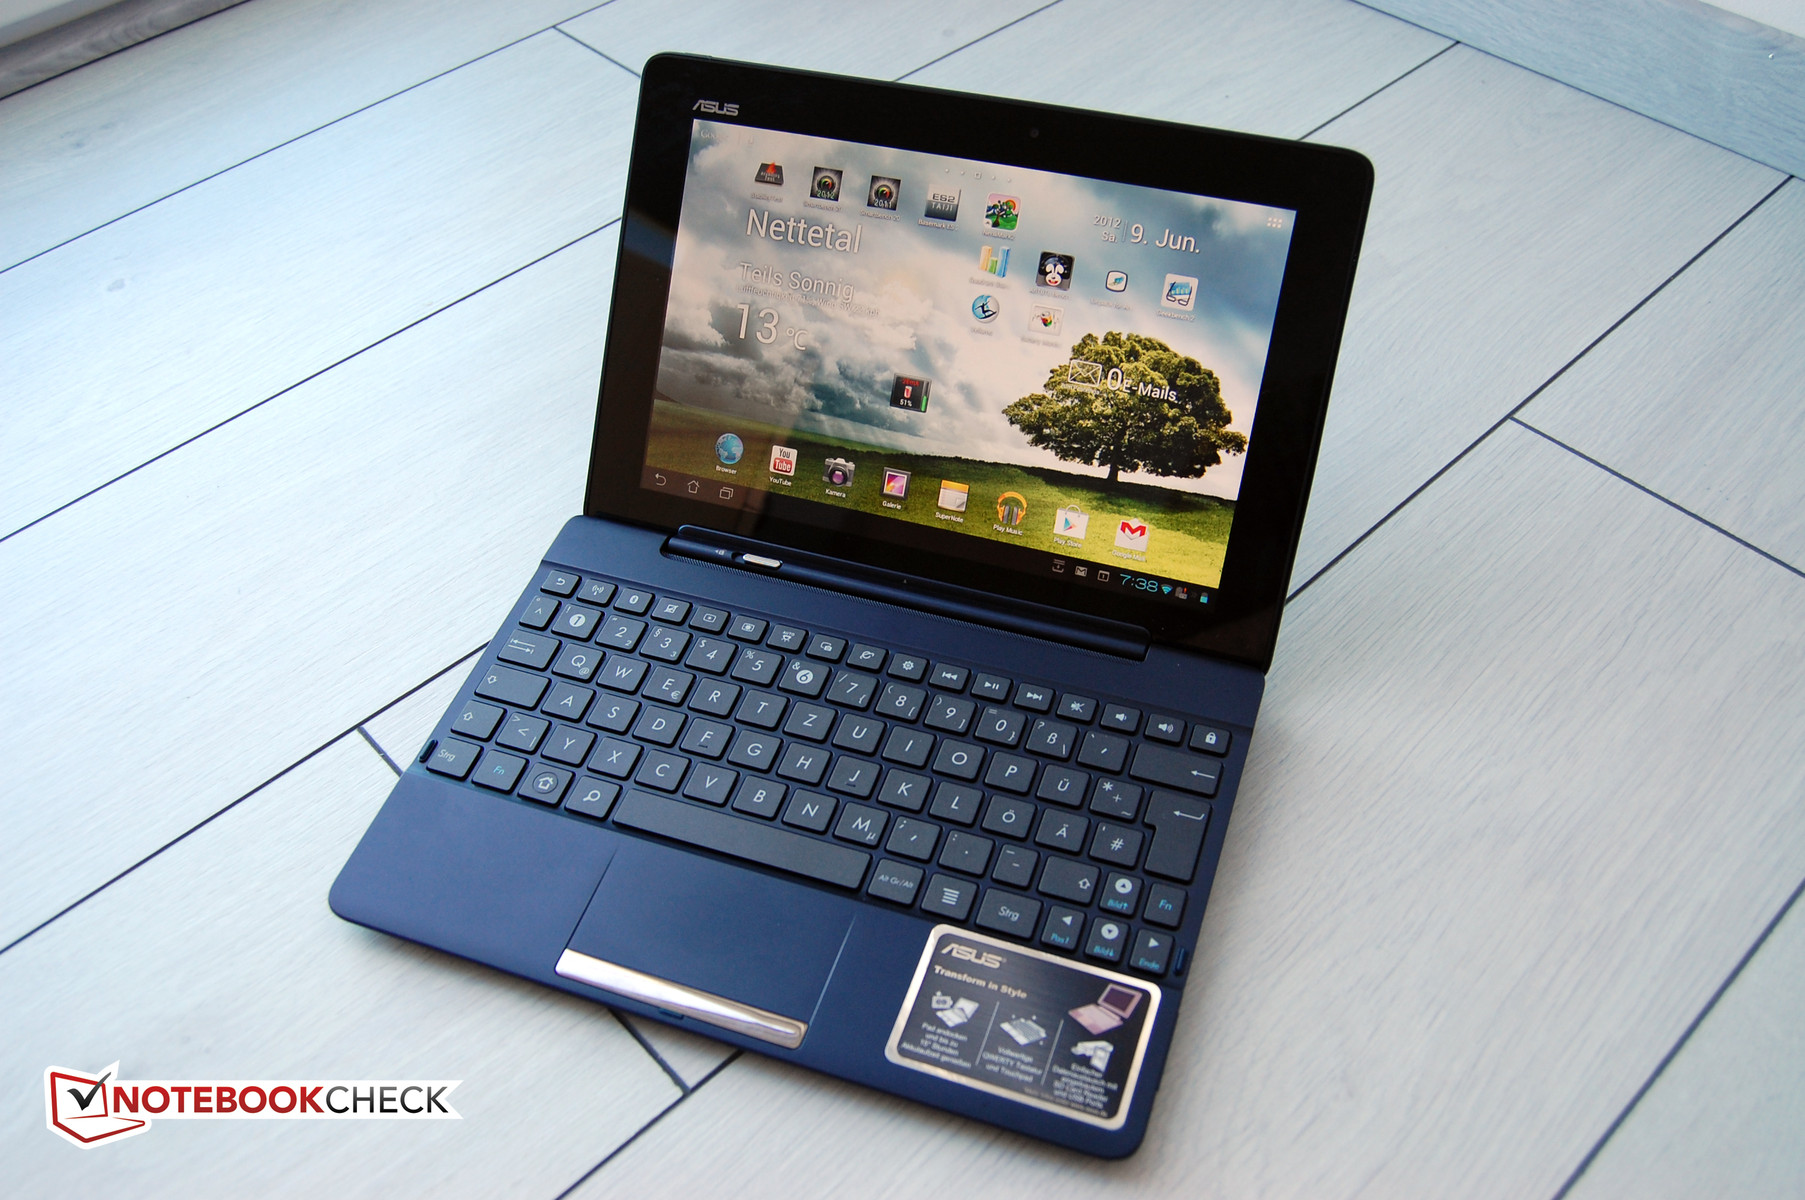 review asus transformer pad tf300t tablet mid notebookcheck net rh notebookcheck net asus transformer pad tf300t manual pdf asus transformer pad tf300t manual pdf